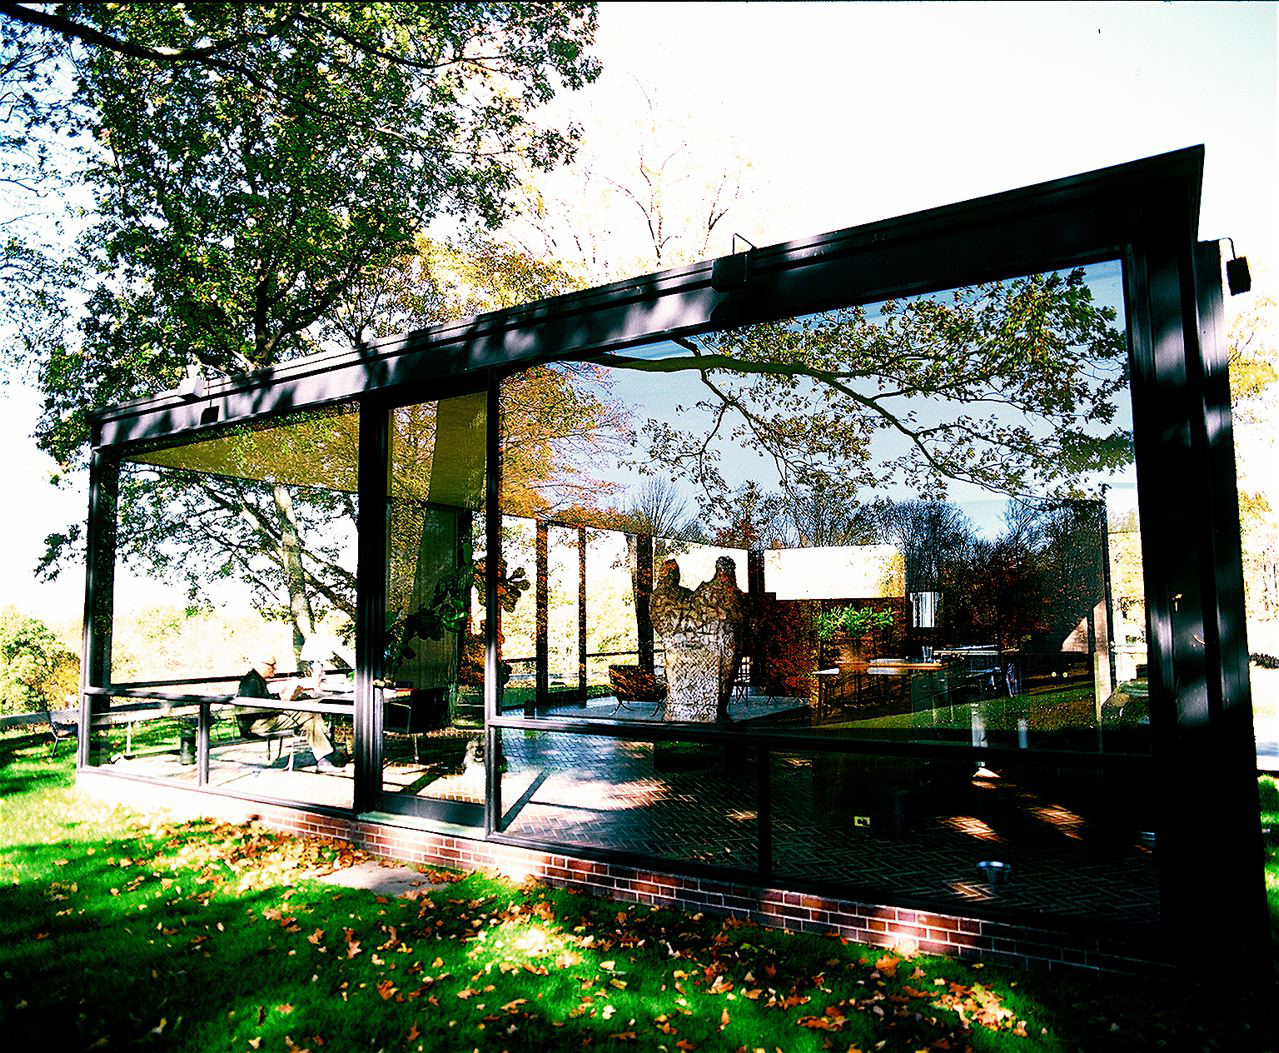 Philip Johnson in his Glass House. Philip was the first recipient of the Pritzker Prize award. I think it is the only photograph in which you see Philip in the house and the house in its entirety.